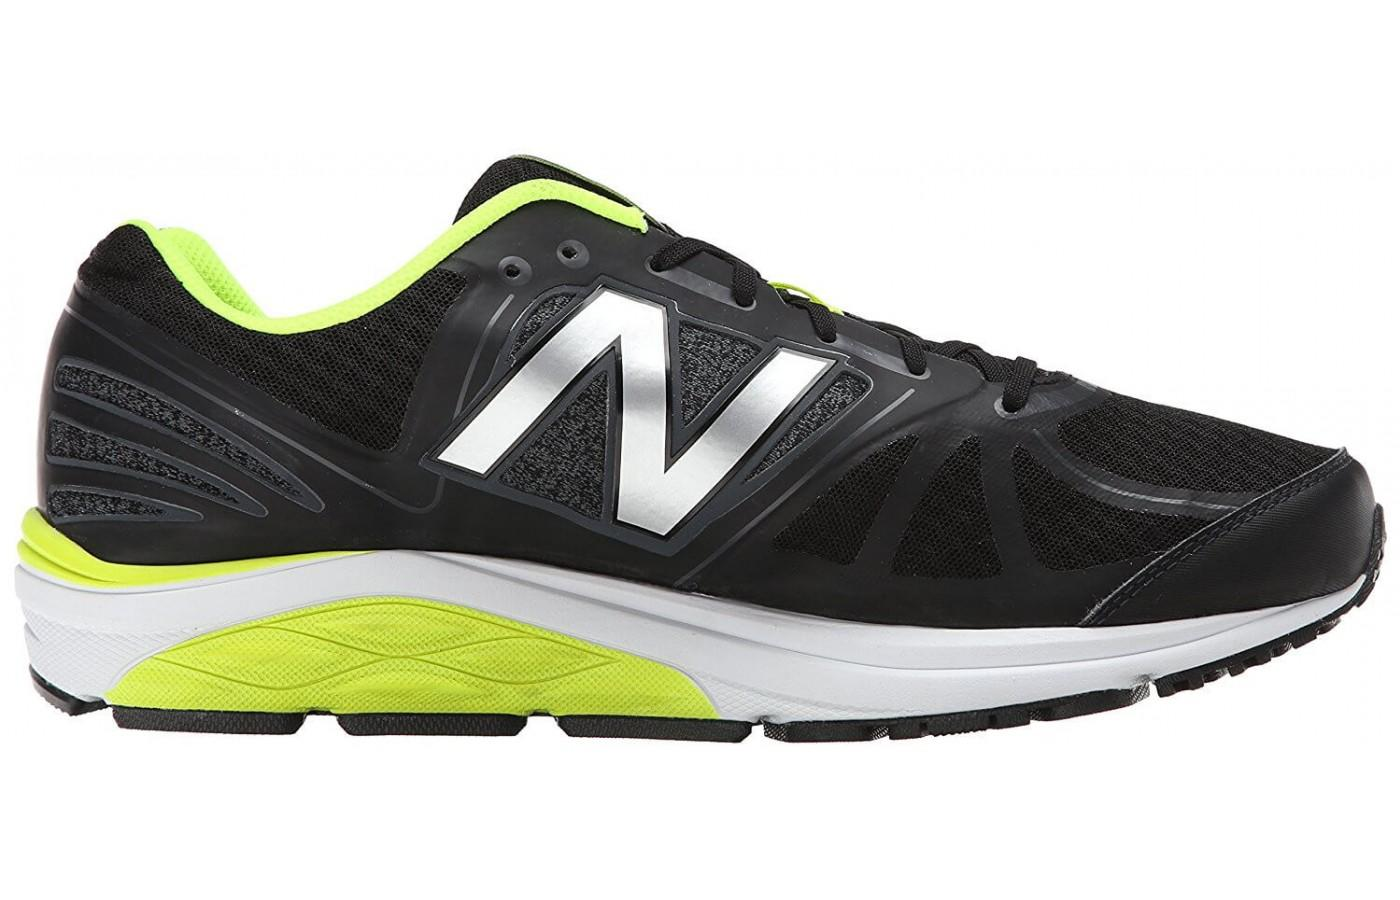 New Balance lowered the drop from 12 mm to 8 mm in the 5th version of the 770.